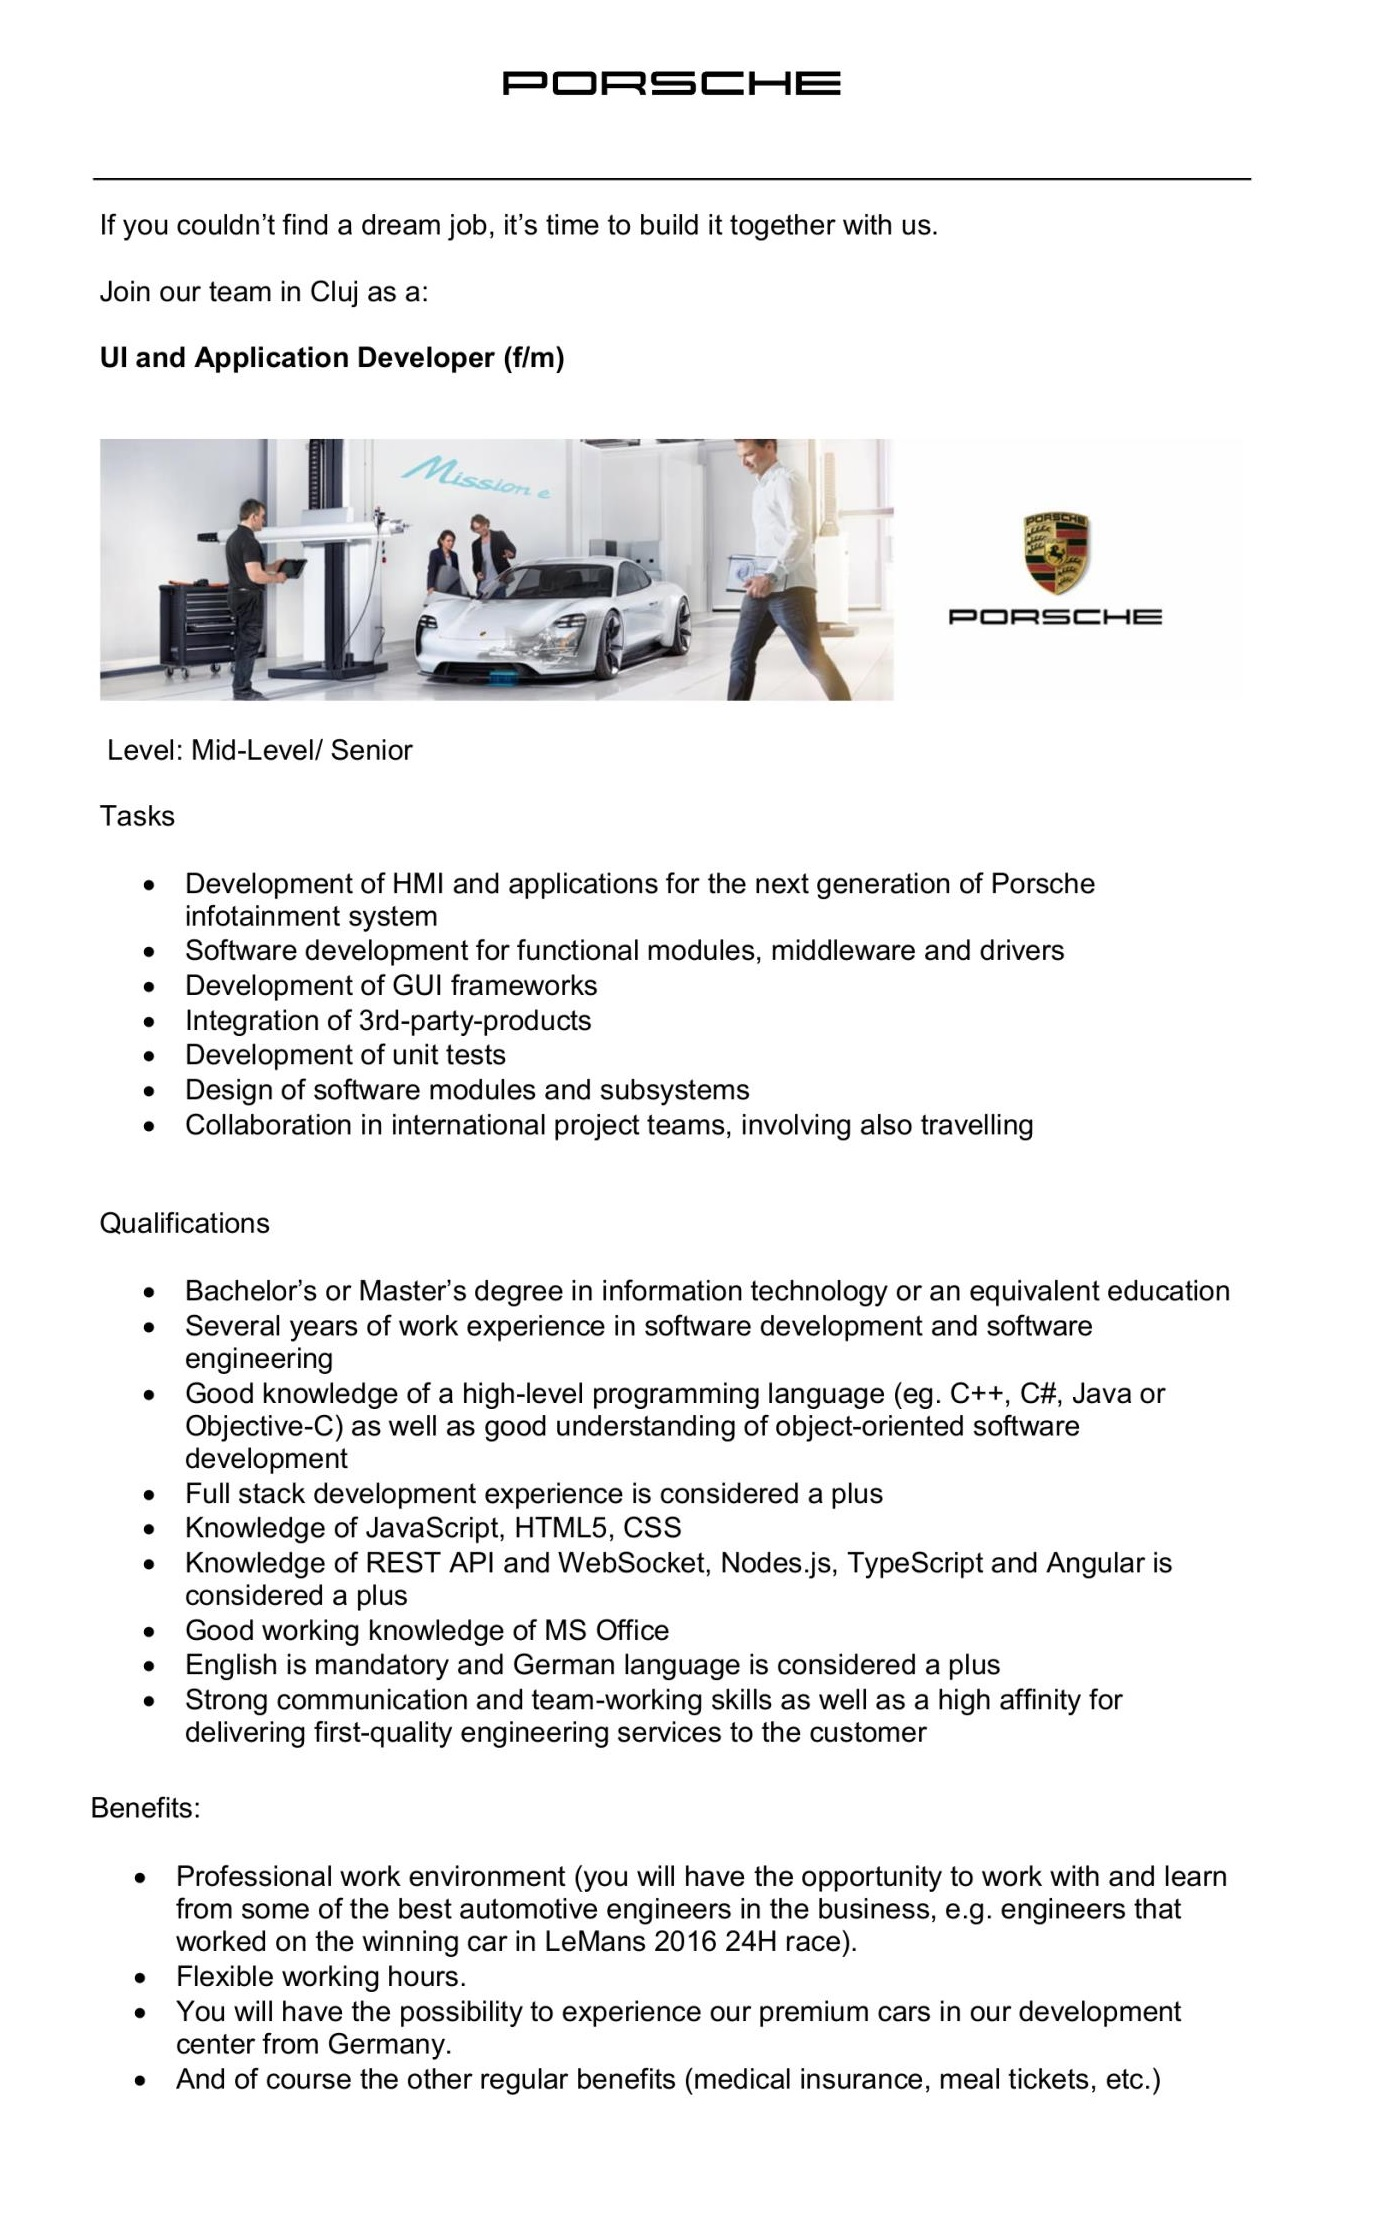 Porsche Engineering is a wholly owned subsidiary of the sports car manufacturer Dr. Ing. h.c. F. Porsche AG, Stuttgart (Germany). We offer premium engineering services and innovative solutions for the automotive industry and beyond. Always developing solutions for the mobility of tomorrow.Services in ClujThe Romanian location of Porsche Engineering in Cluj-Napoca is specialized in software development and the digital transformation of automotive development – always with regard to complete vehicle development. Specialists and development engineers at the Romanian location work closely together with their colleagues in Germany or in other countries in order to combine and integrate the specific knowledge in digitization with the complete vehicle expertise out of the overall background of a sports car manufacturer.Career Opportunities in ClujIn Cluj-Napoca, we are looking for highly motivated software engineers or mechanical engineers with enthusiasm and an entrepreneurial mindset. Become a part of the Porsche world and shape the future of mobility in an innovative environment.